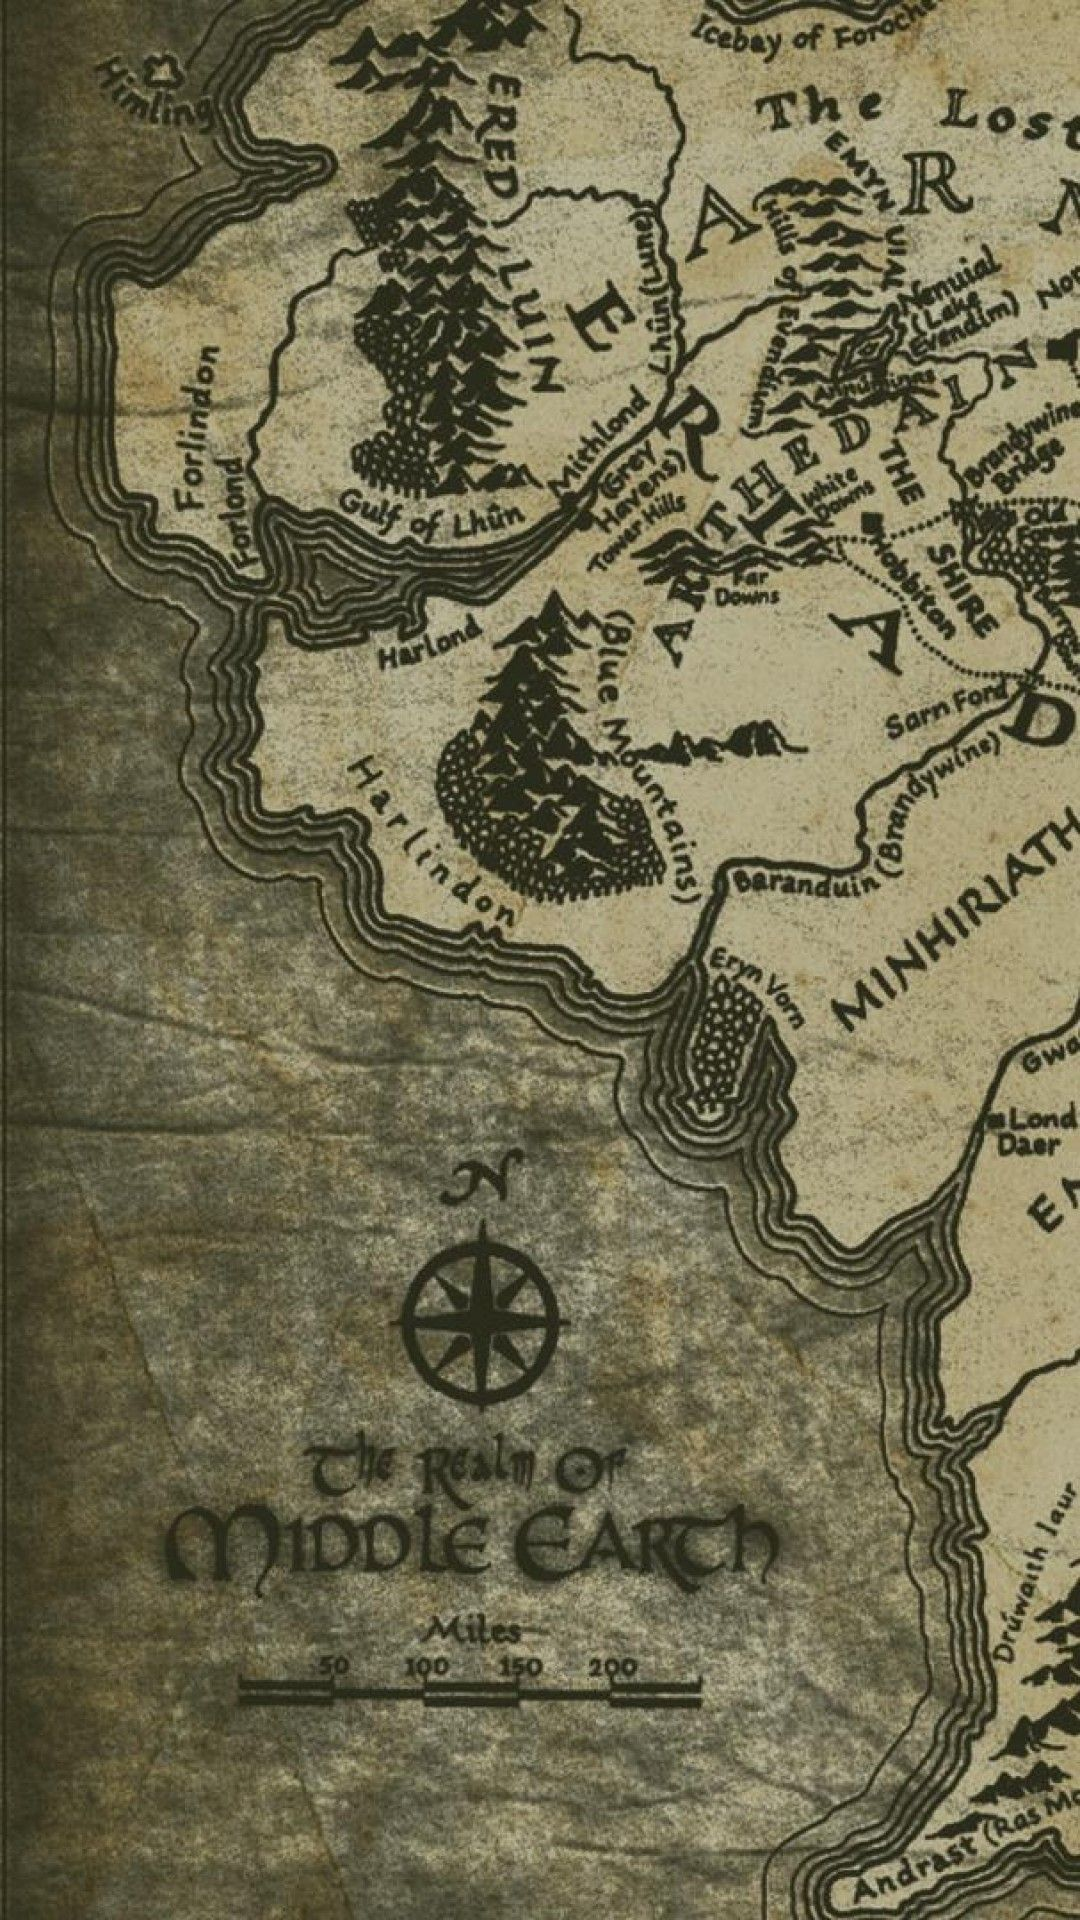 Lord Of The Rings Map Iphone Wallpaper In 2020 The Hobbit Lord Of The Rings Middle Earth